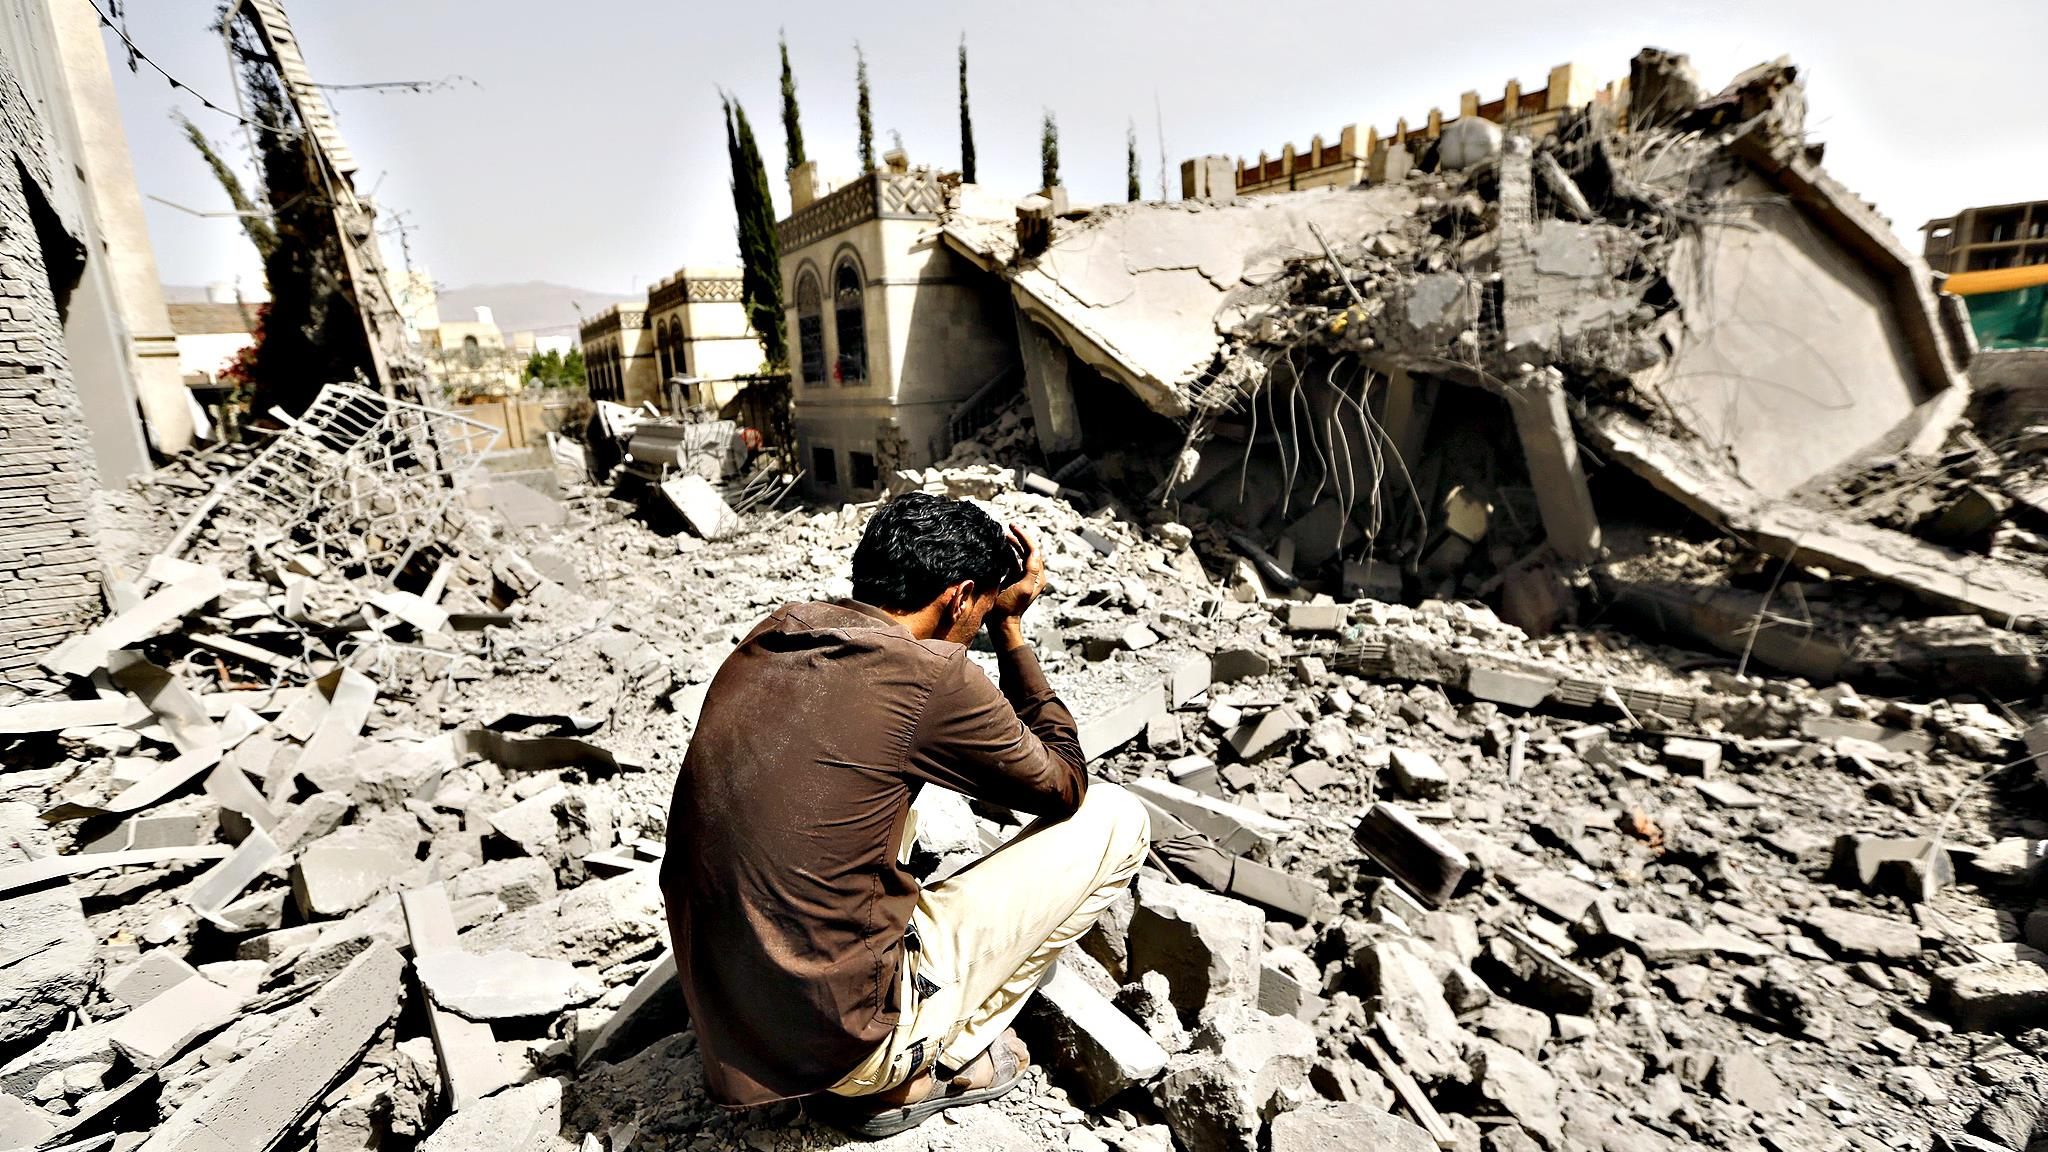 A tiny piece of the destruction and chaos in Yemen. Don't Google Image search unless you have a strong stomach.   Photo Credit: highschool.latimes.com